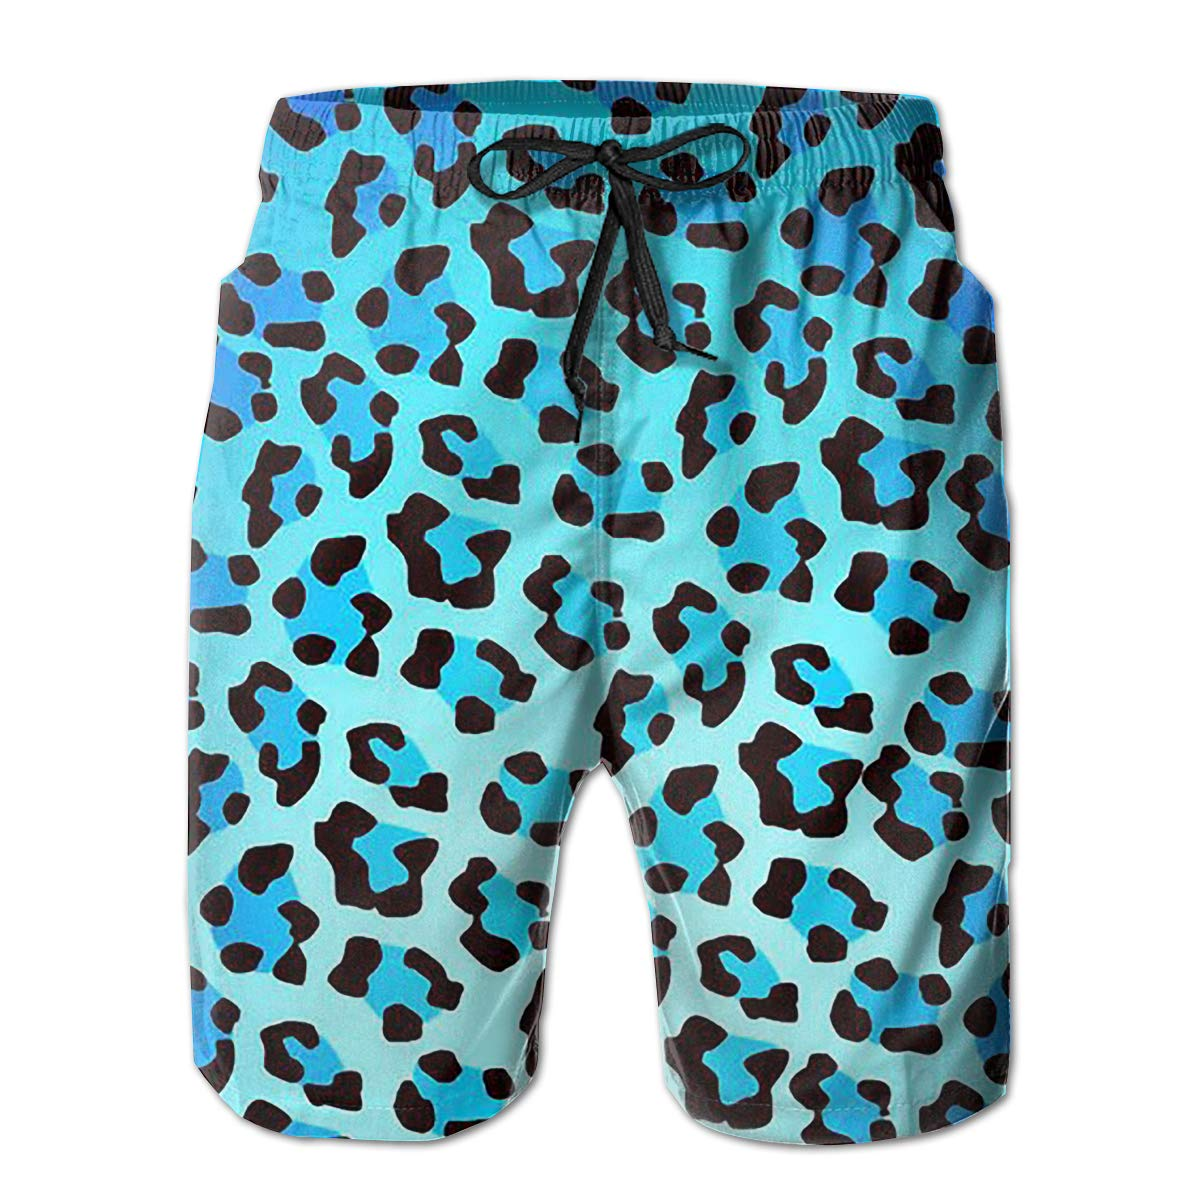 Wexzss Leopard Print Blue Funny Summer Quick-Drying Swim Trunks Beach Shorts Cargo Shorts